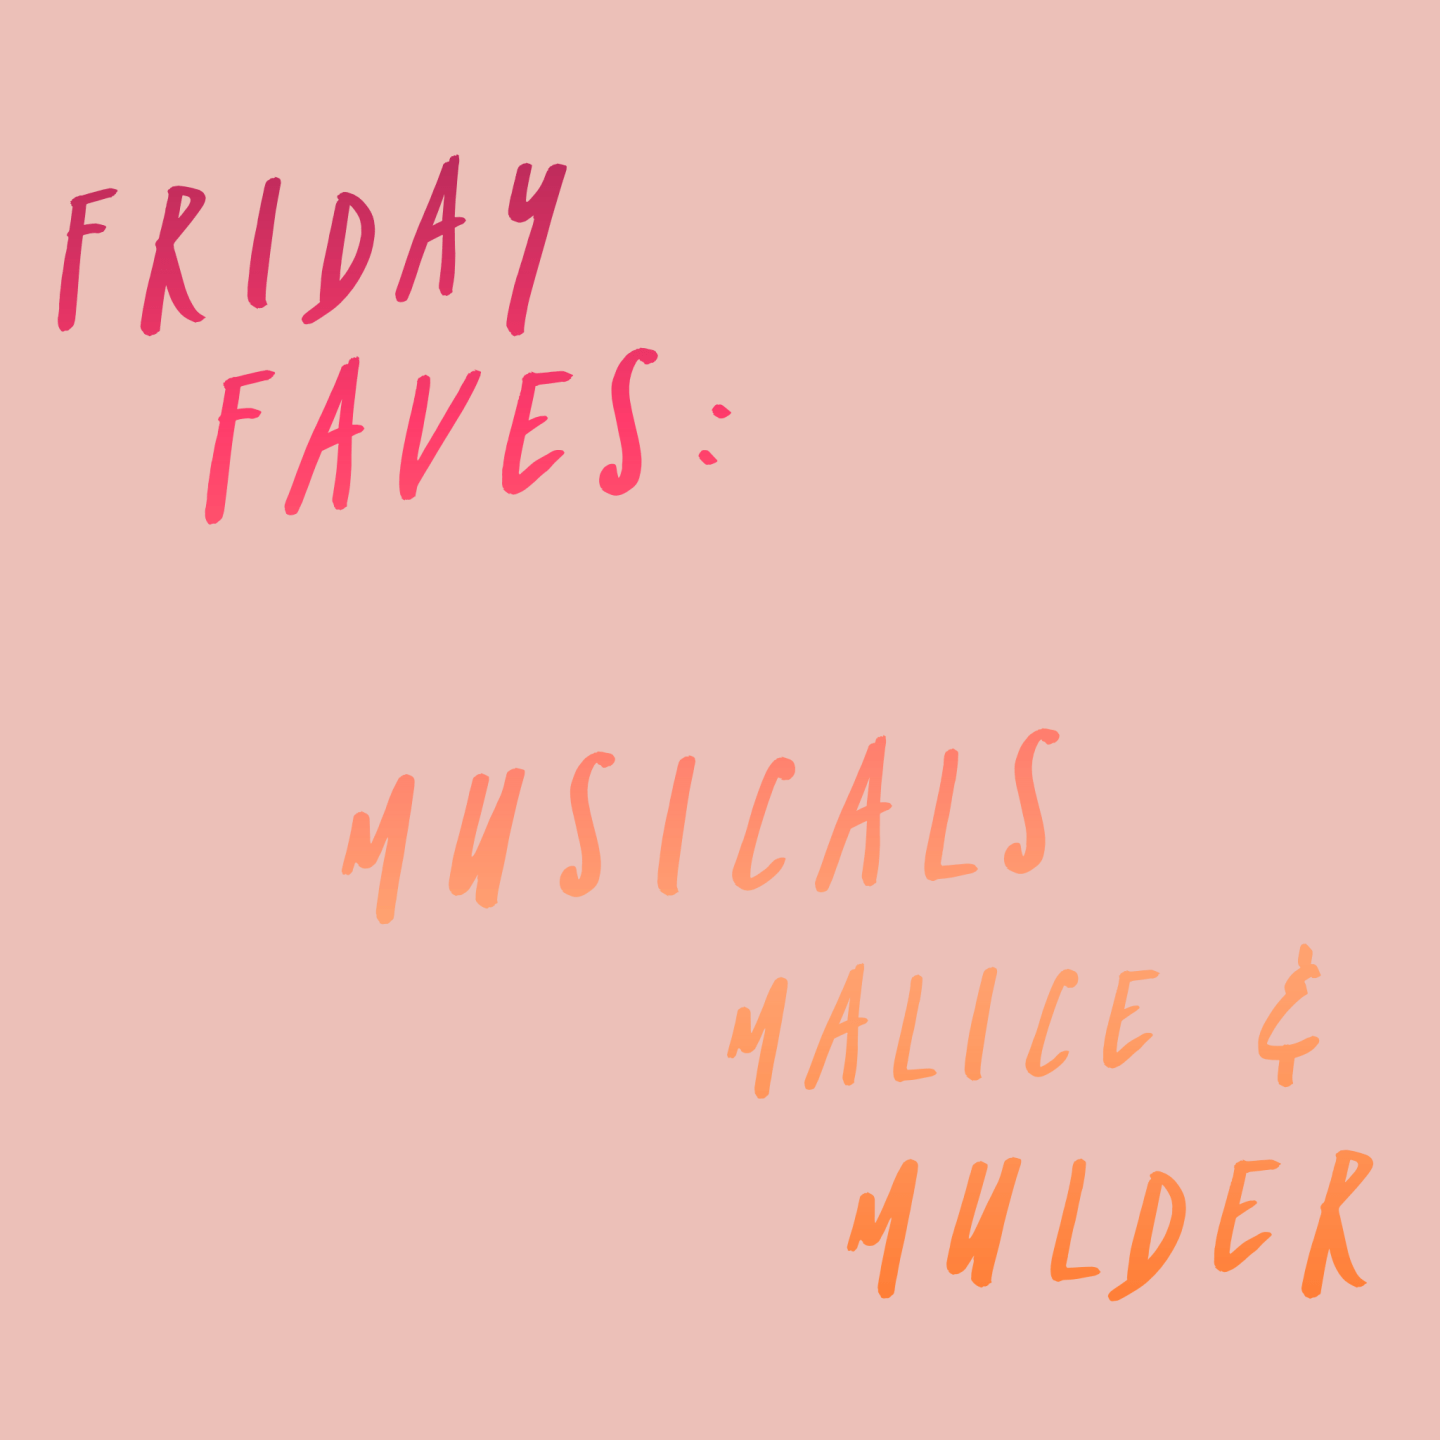 FRIDAY FAVES: Matilda, Malice and Mulder...